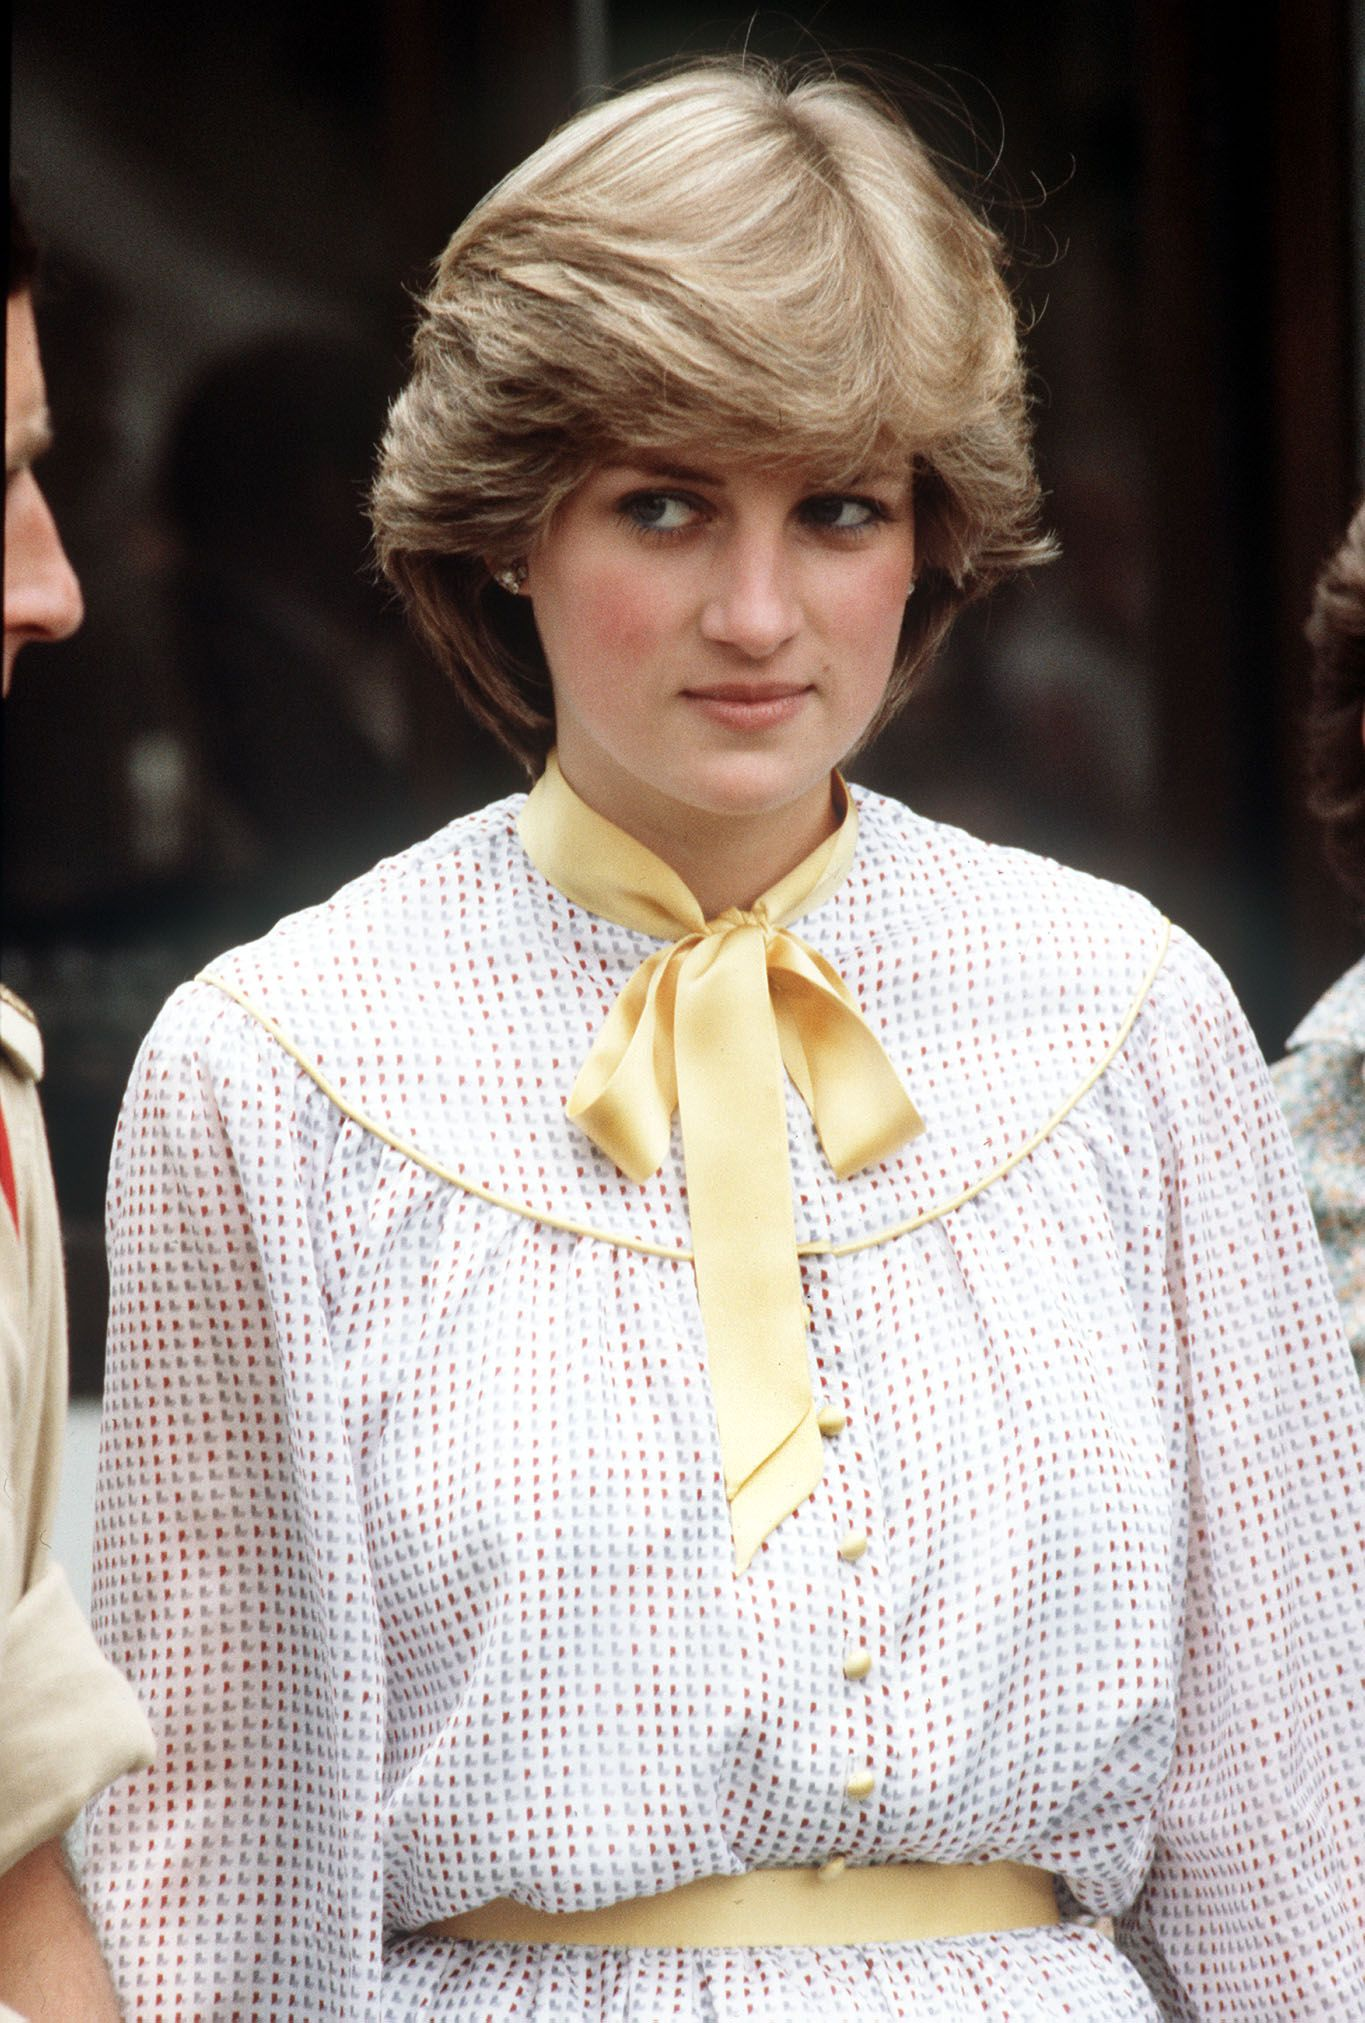 princess diana before she was royal images of young princess diana princess diana before she was royal